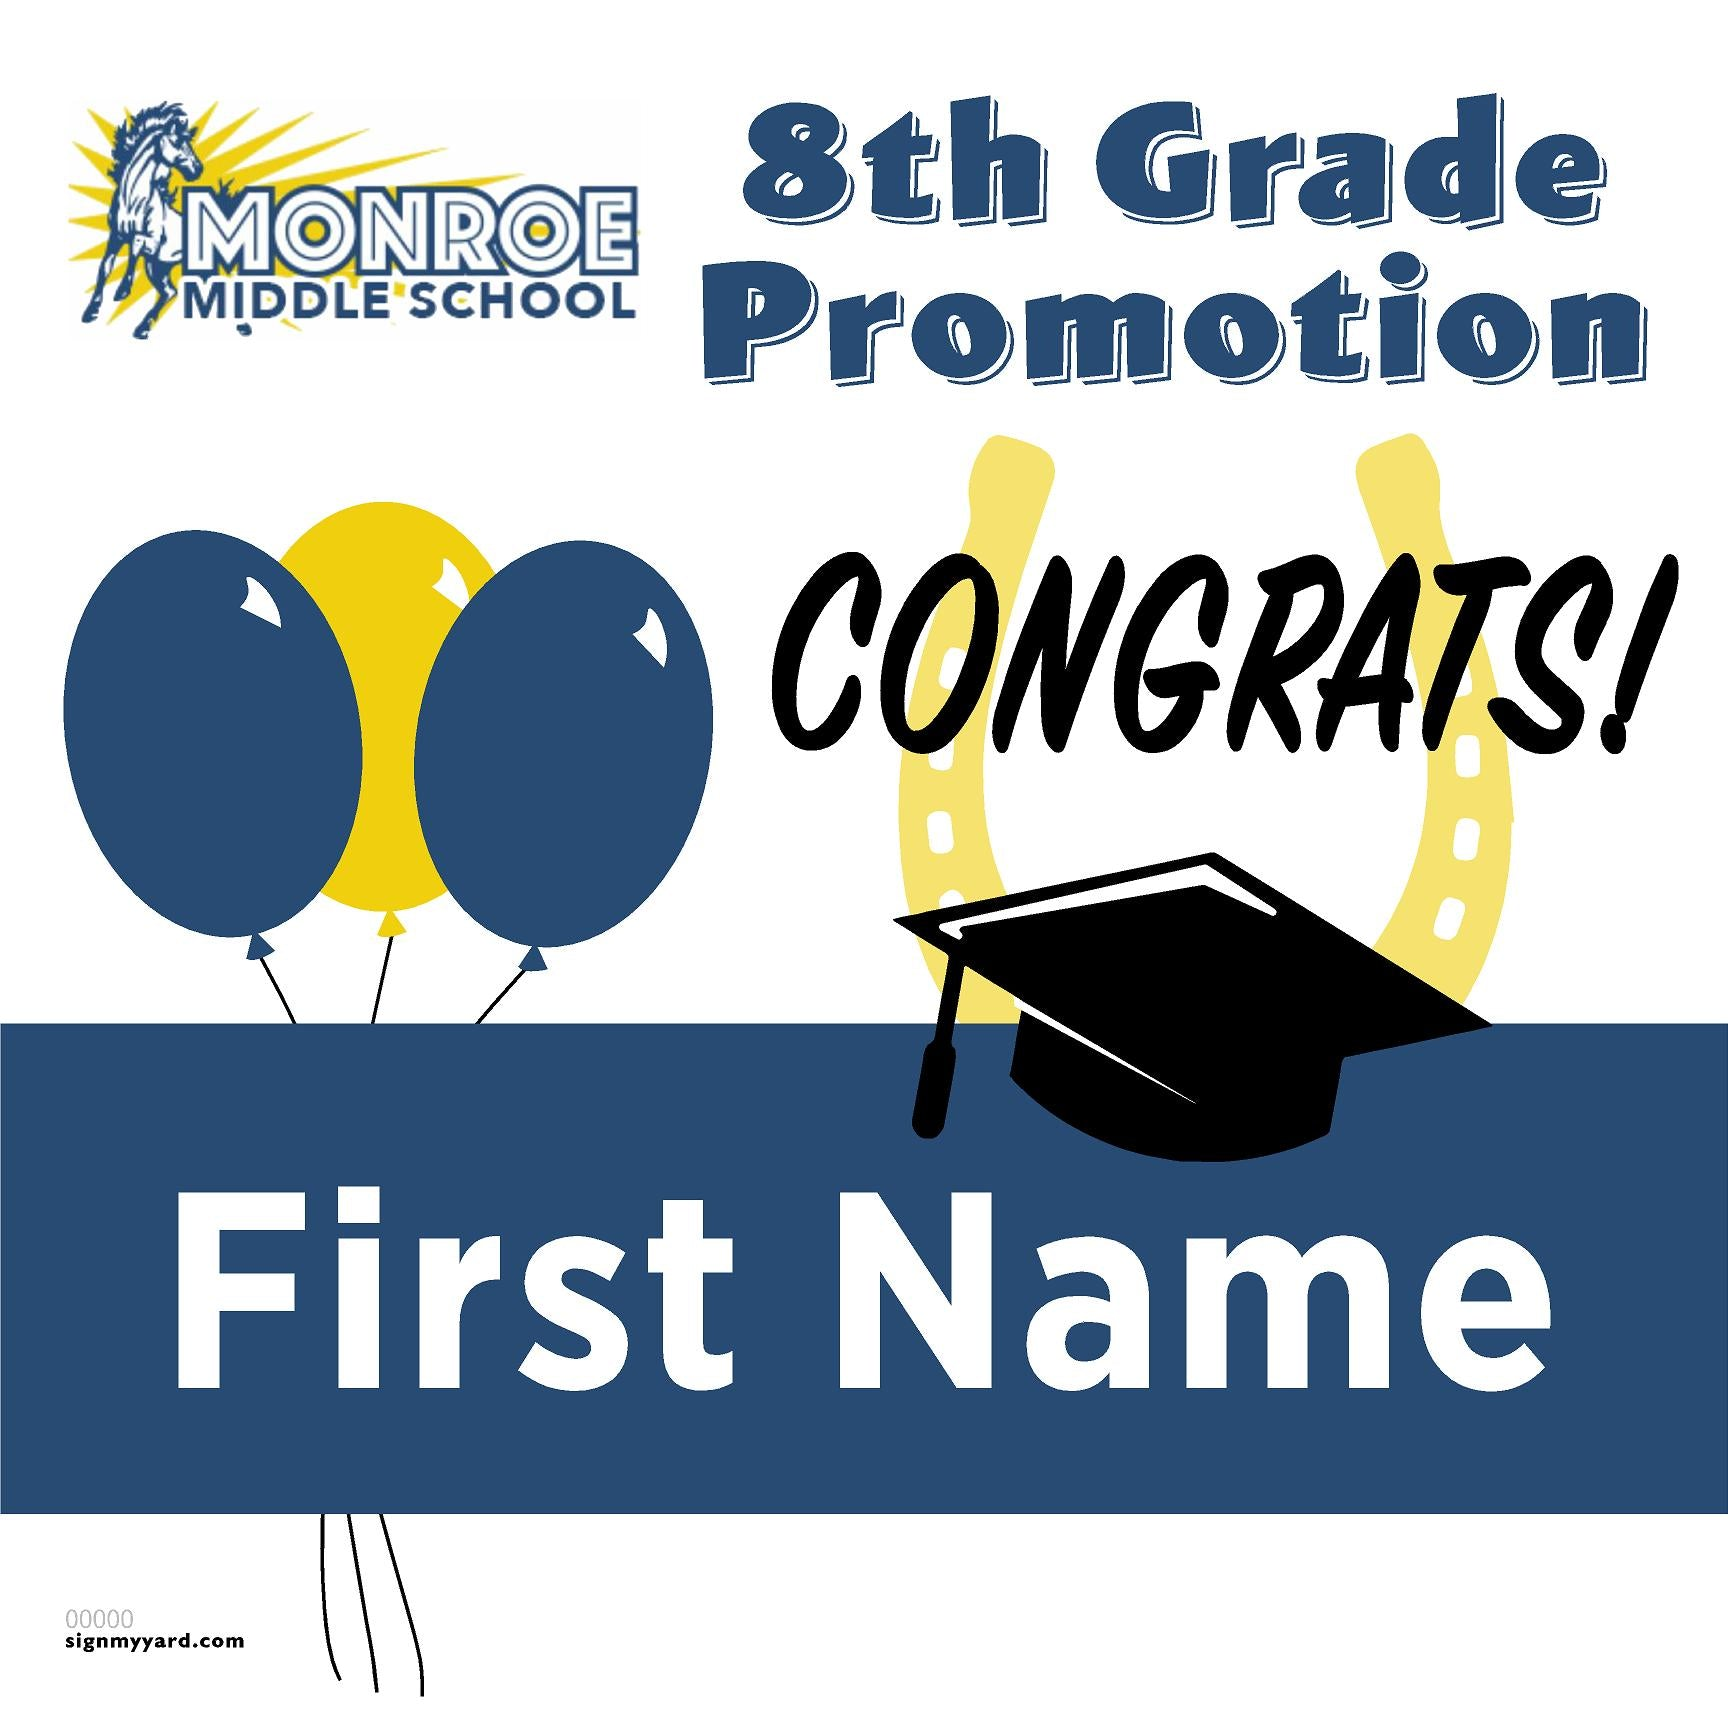 Monroe Middle School 8th Grade Promotion 24x24 Yard Sign (Option A)